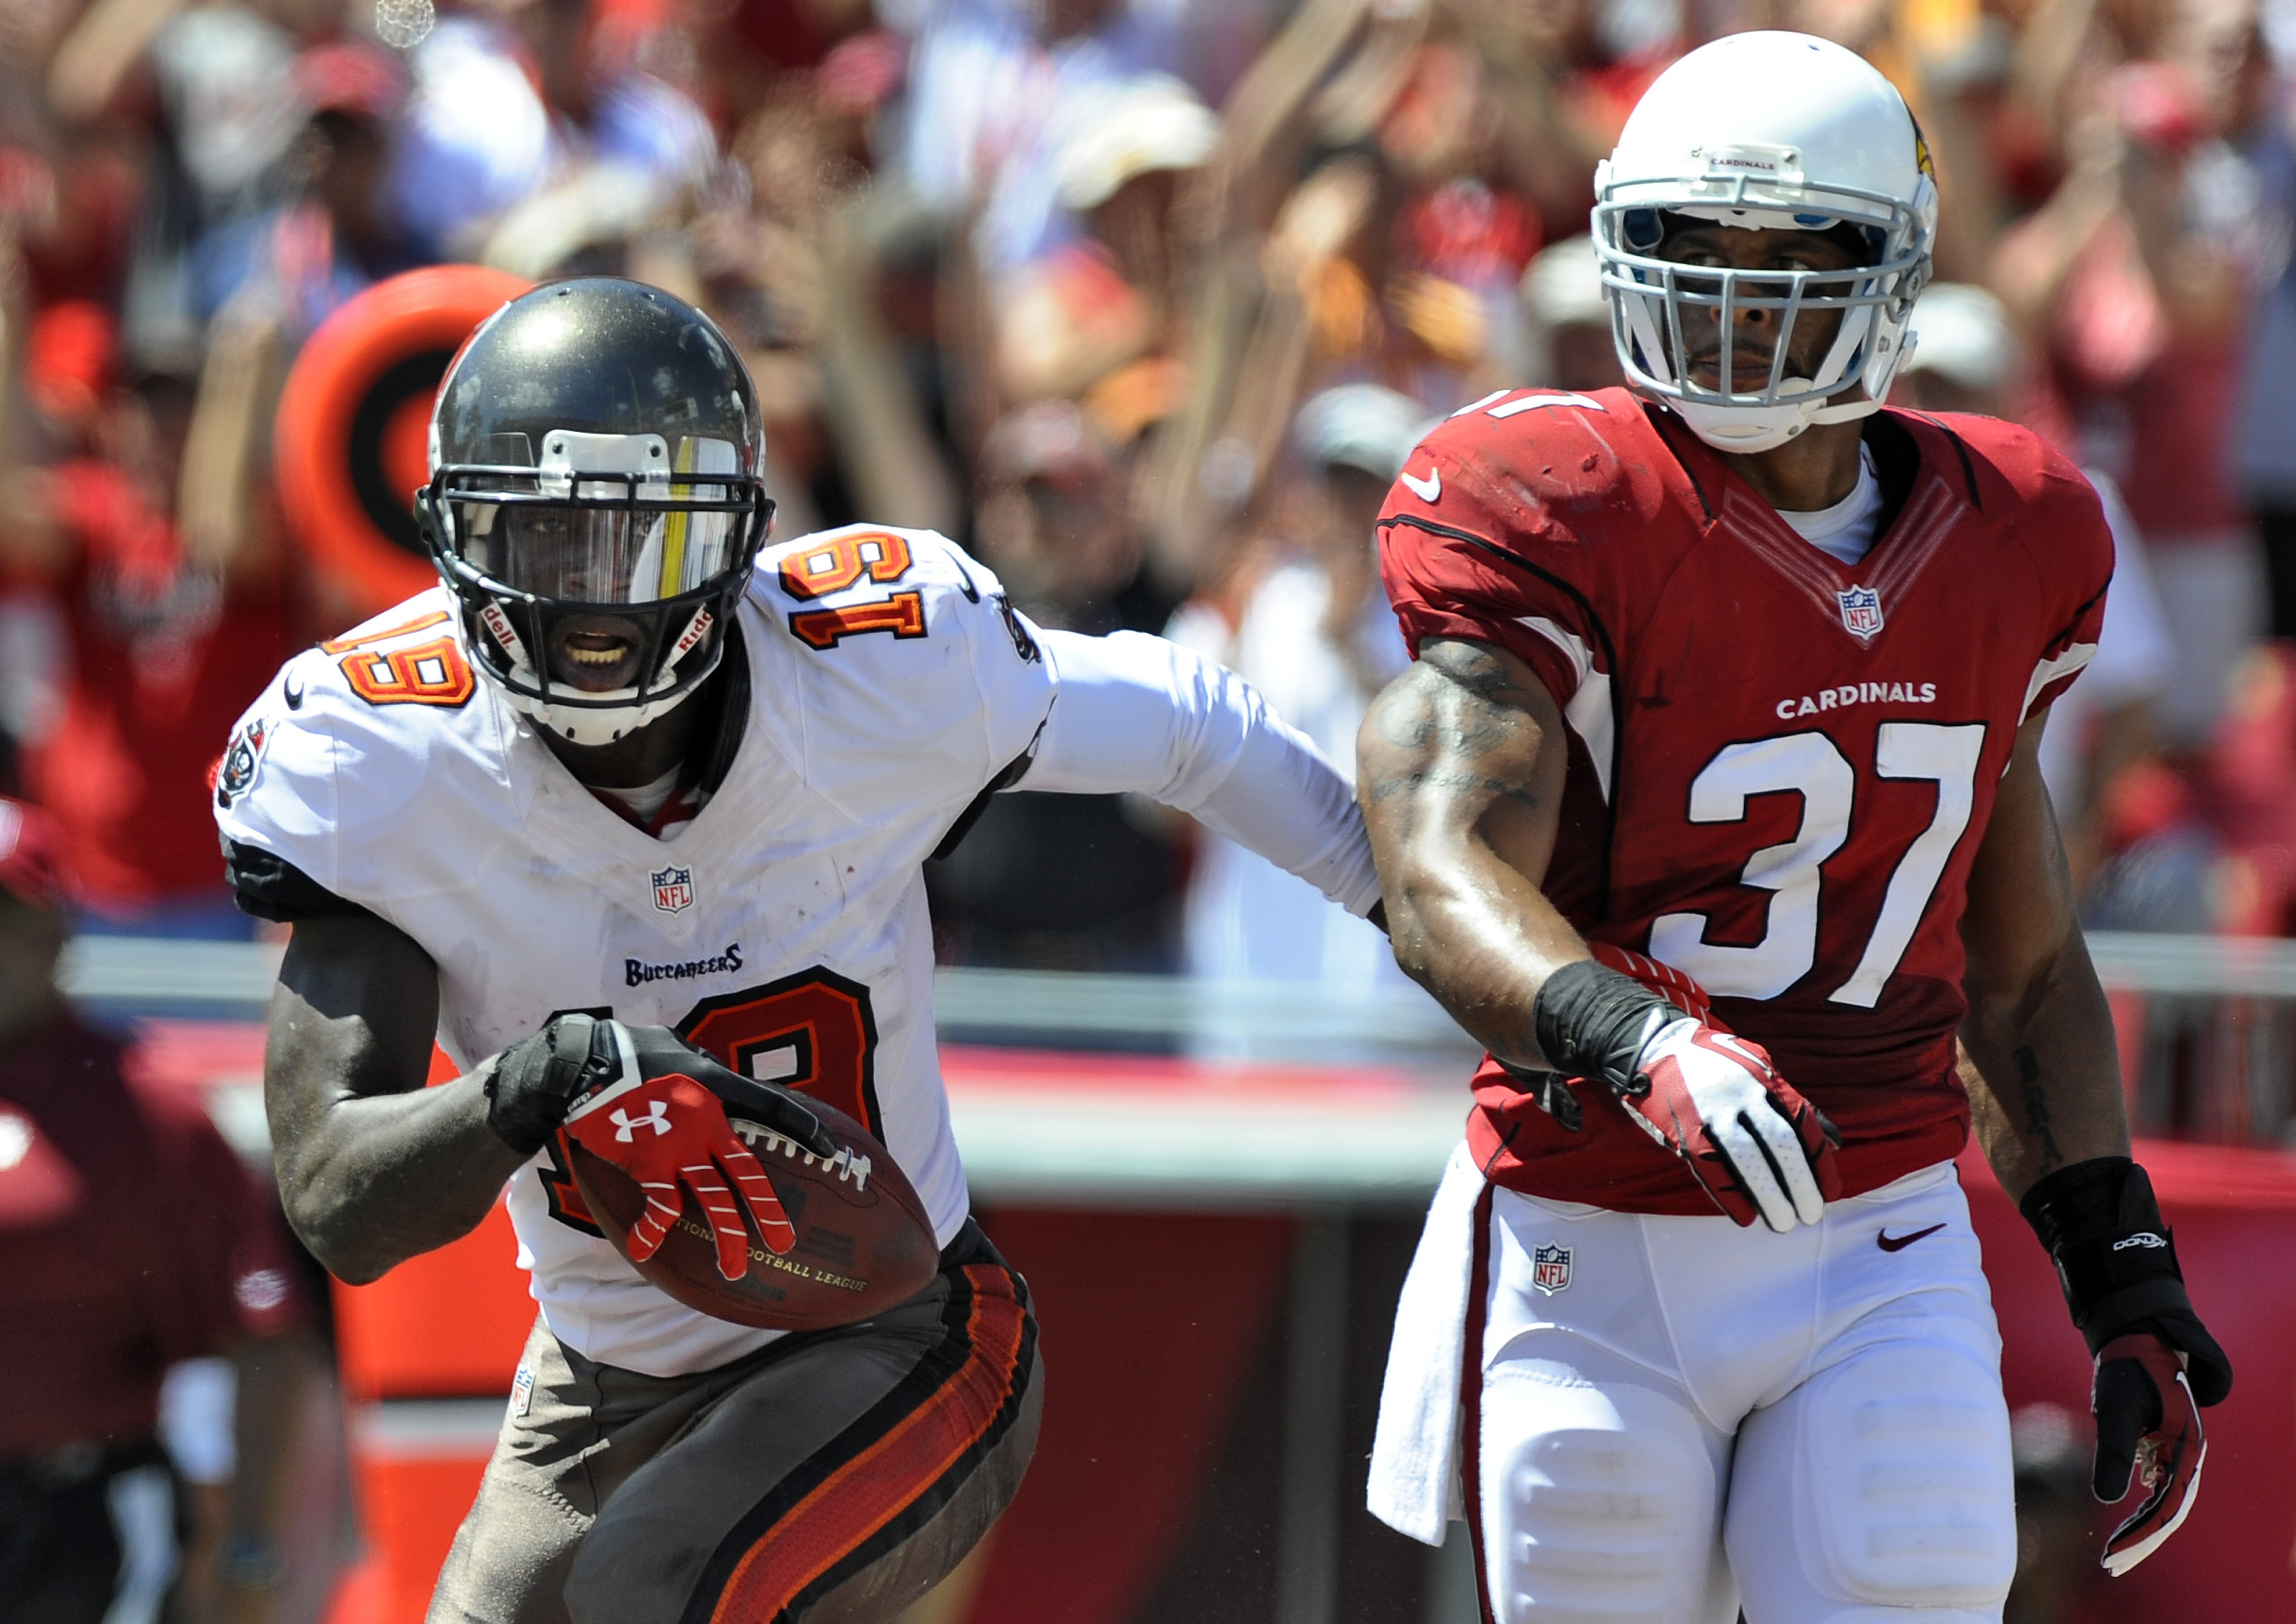 Tampa Bay Buccaneers wide receiver Mike Williams (19) was released from the hospital late Sunday; an arrest warrant has been issued for his brother, Eric Baylor.